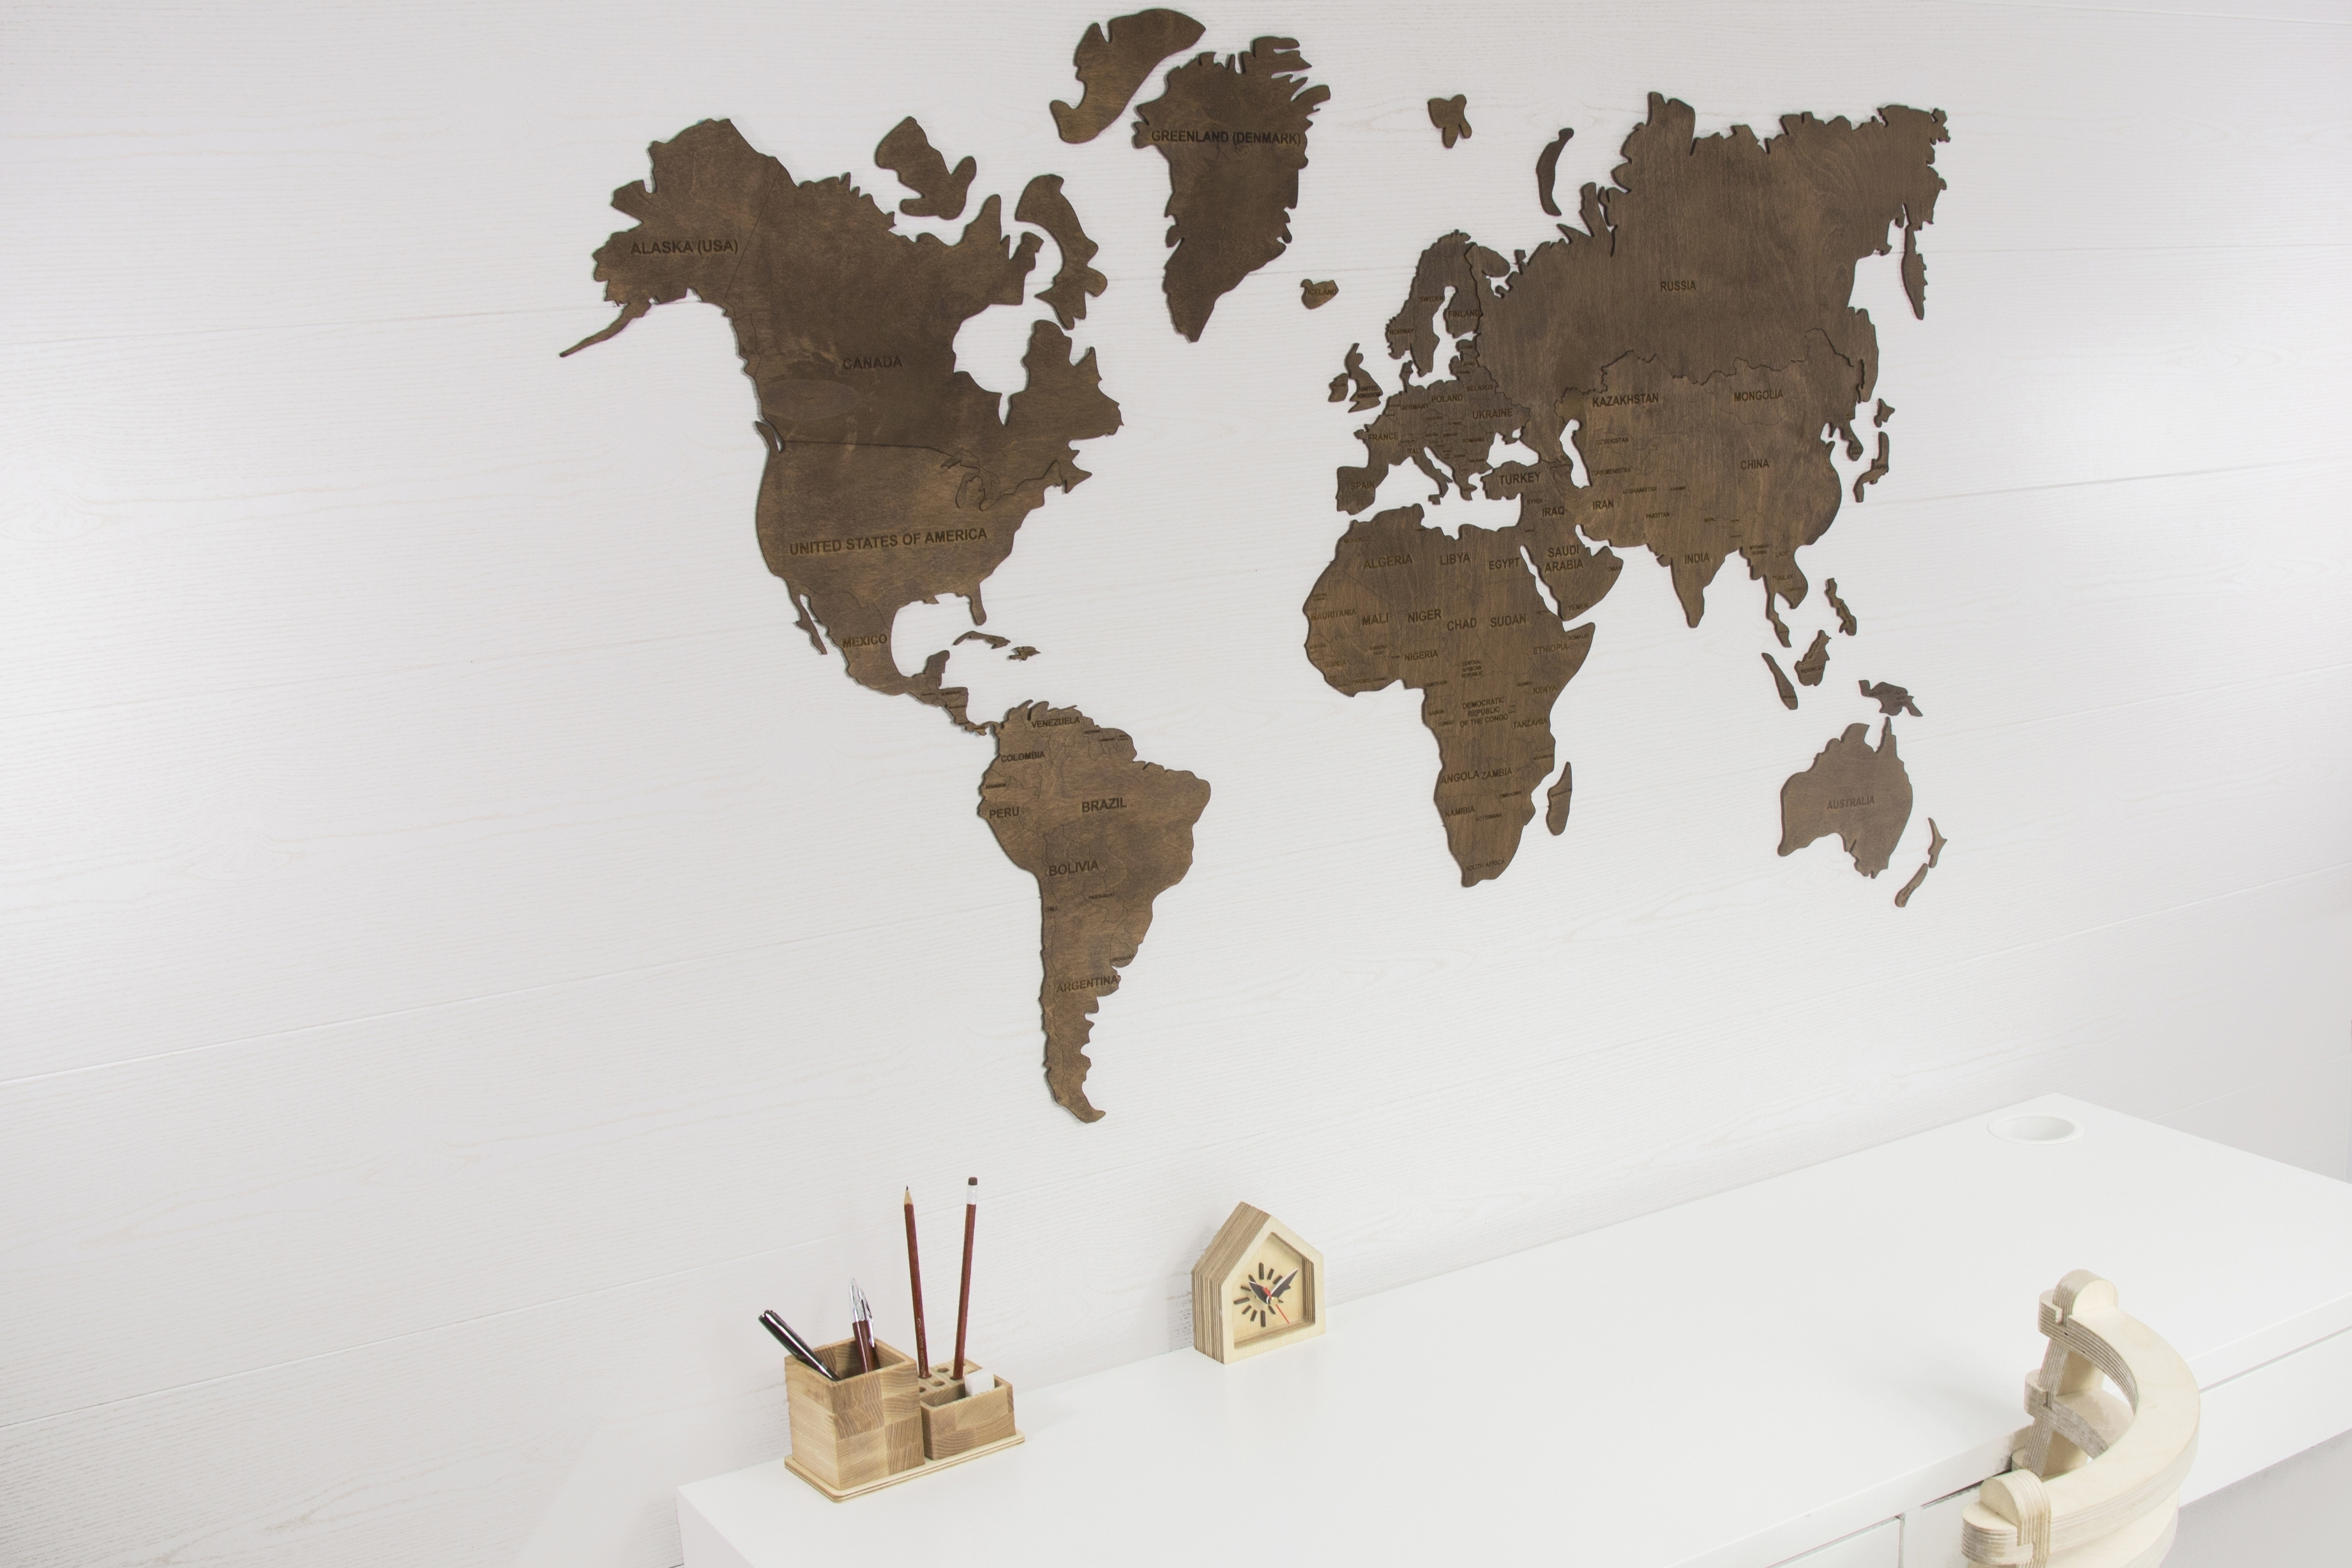 World Map Wall, World Map Hanging, World Map Wooden, World Map Wood Pertaining To Most Current Wall Art World Map (View 18 of 20)